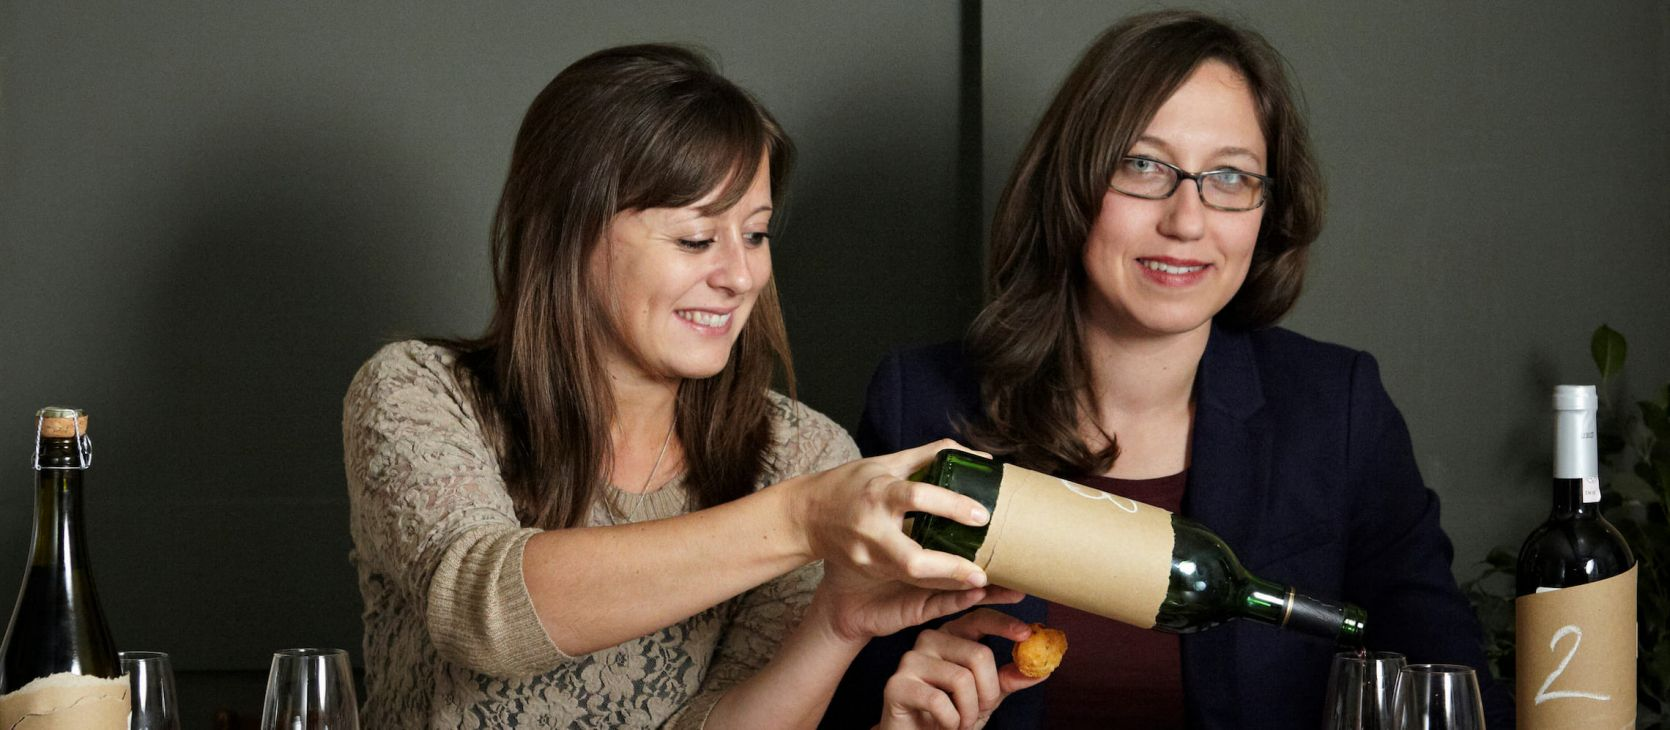 Photo for: Interviewing Unwined Bar Owners, Laura & Kiki